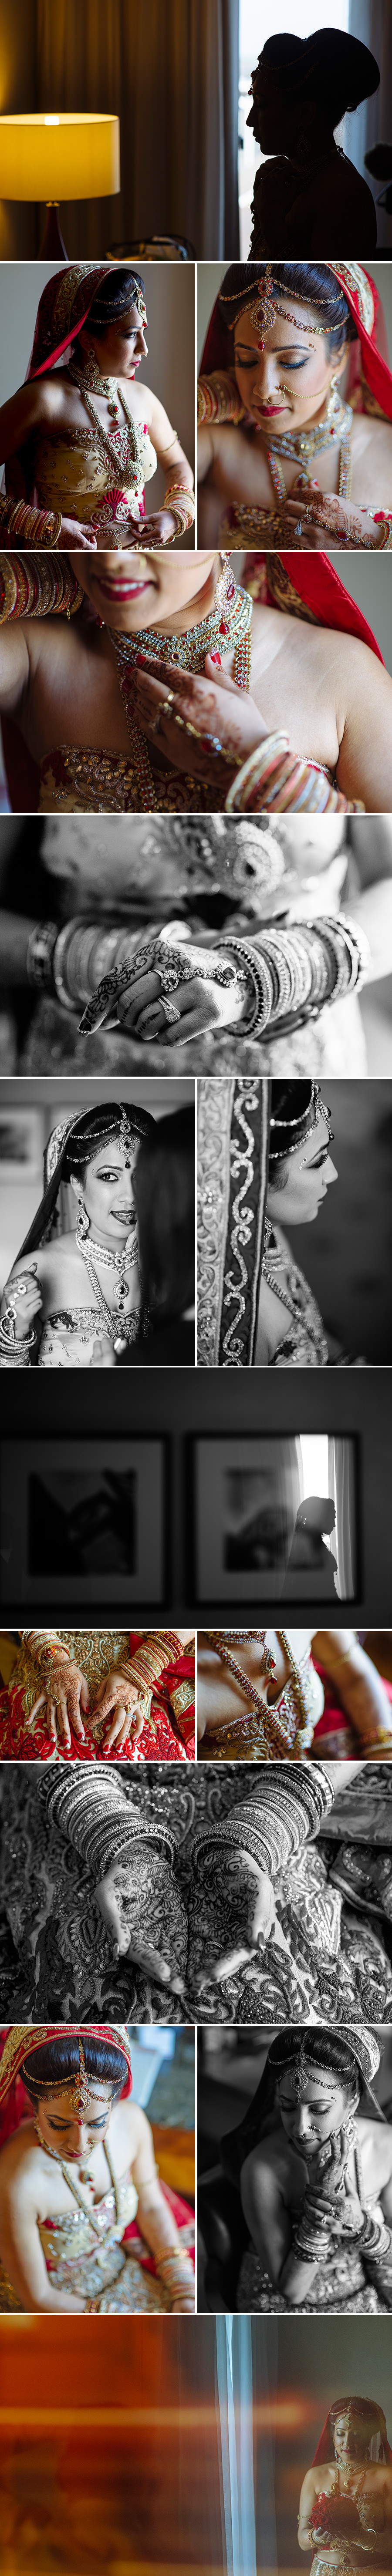 03_destination_indian_wedding_marriott wedding_top wedding photography_bridal portraits_03